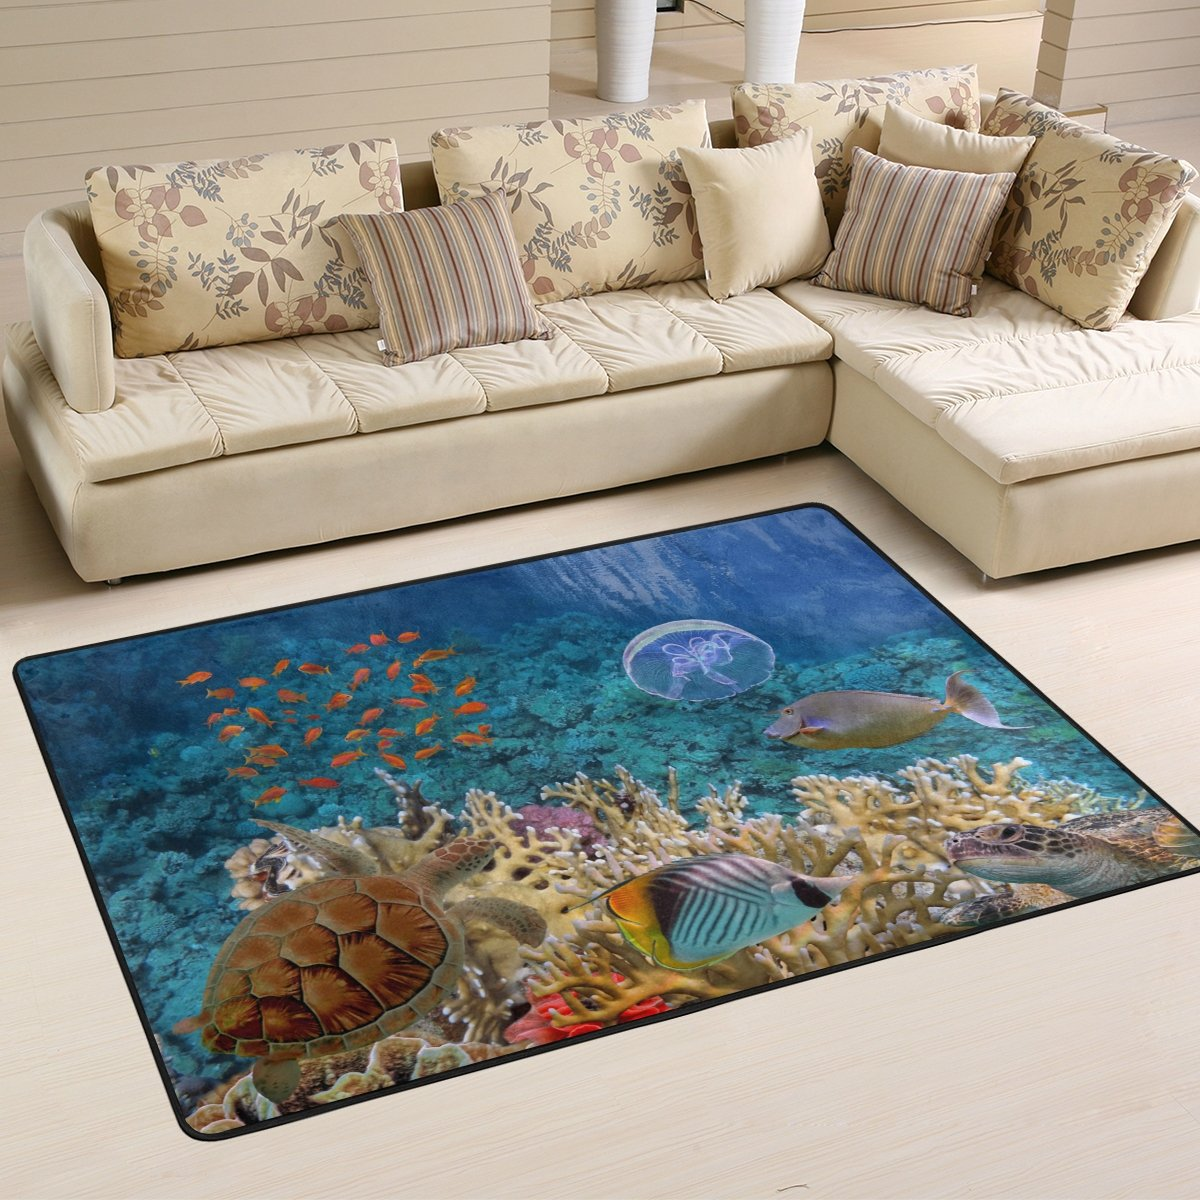 Naanle Ocean Animal Area Rug 4 x6 , Tropical Beach Sea Turle Polyester Area Rug Mat for Living Dining Dorm Room Bedroom Home Decorative